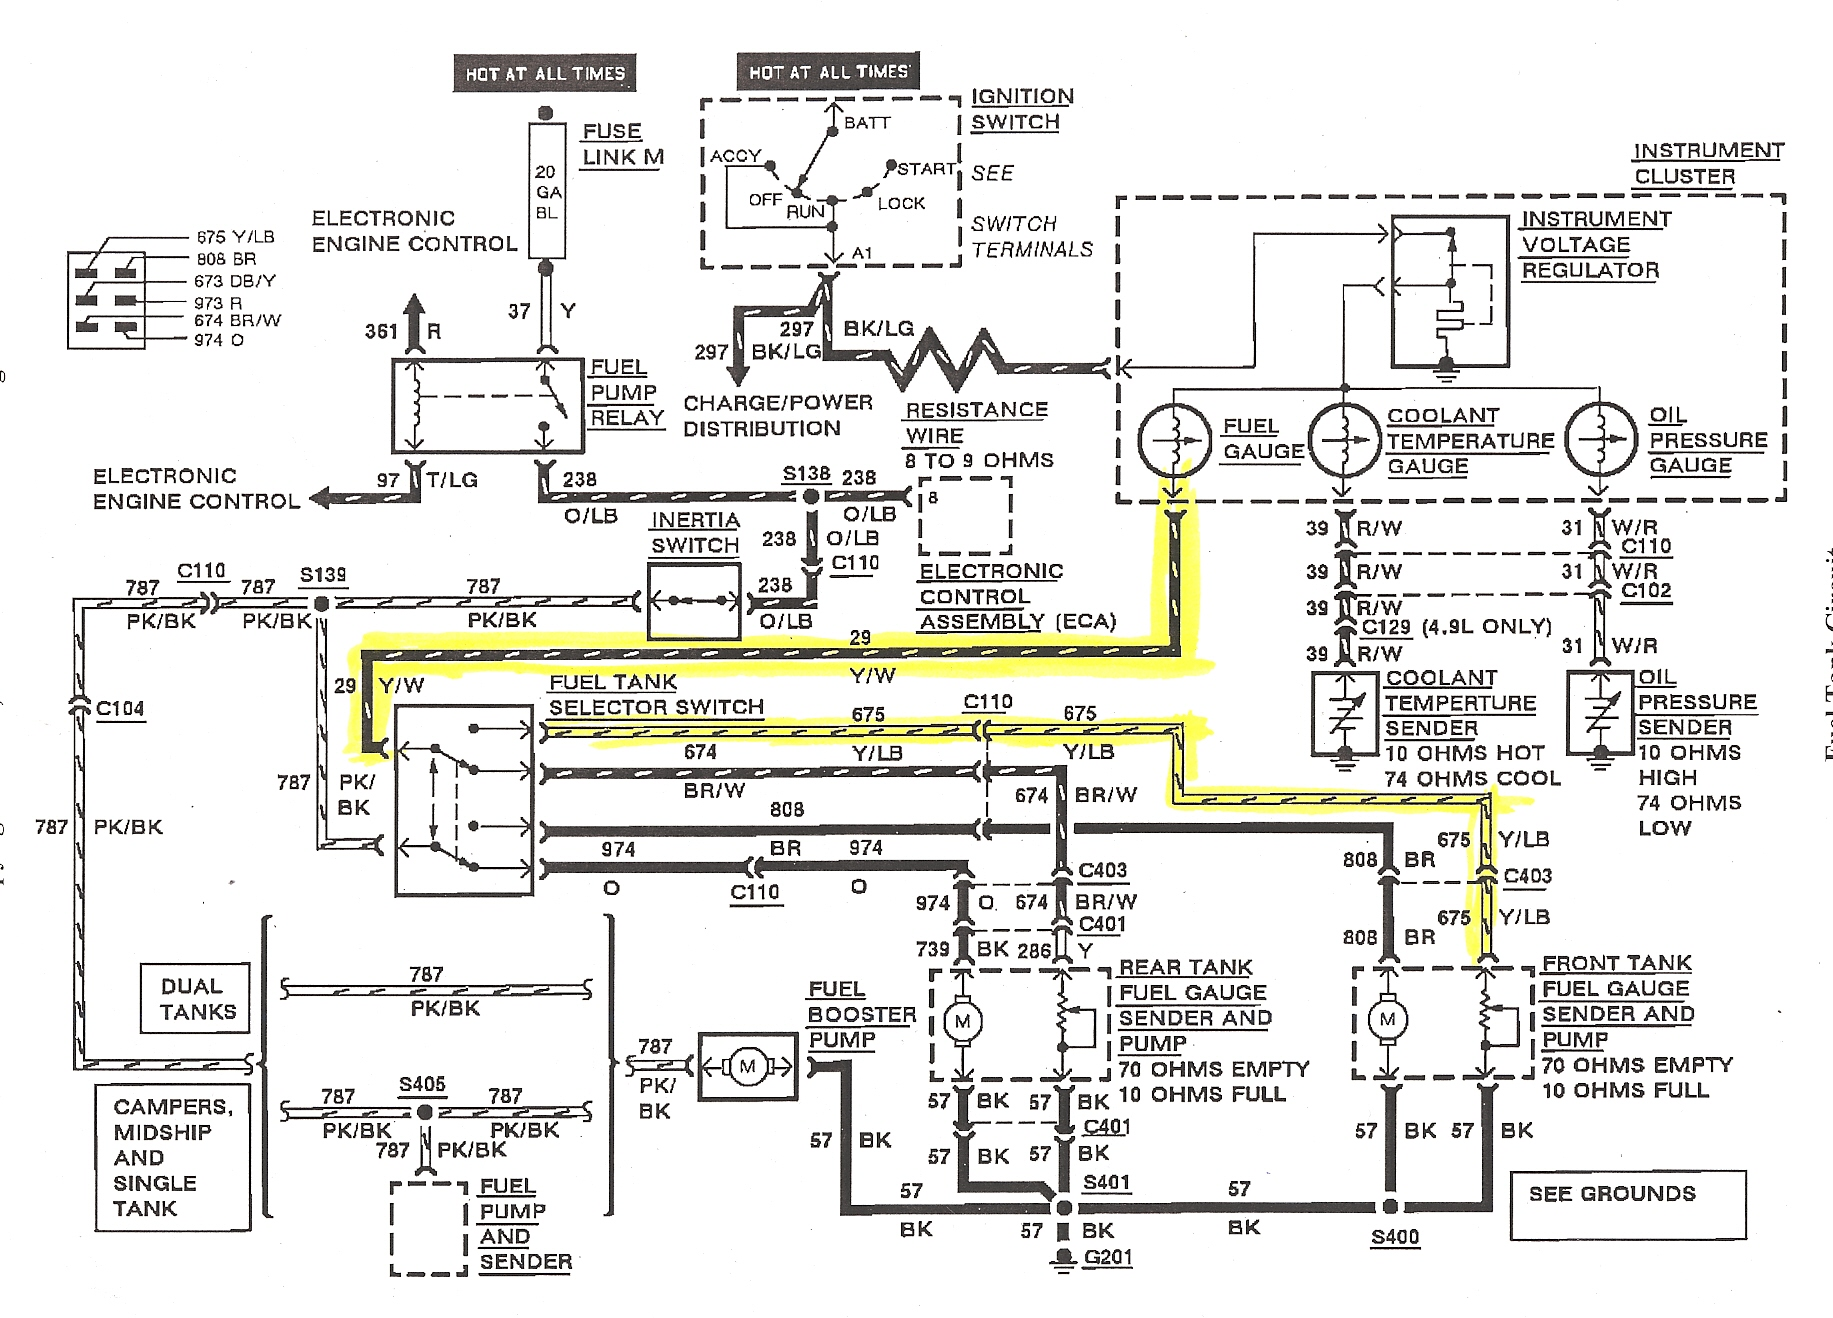 hight resolution of 88 ford mustang fuel sender wiring wiring diagram forward 1990 ford mustang fuel gauge wiring